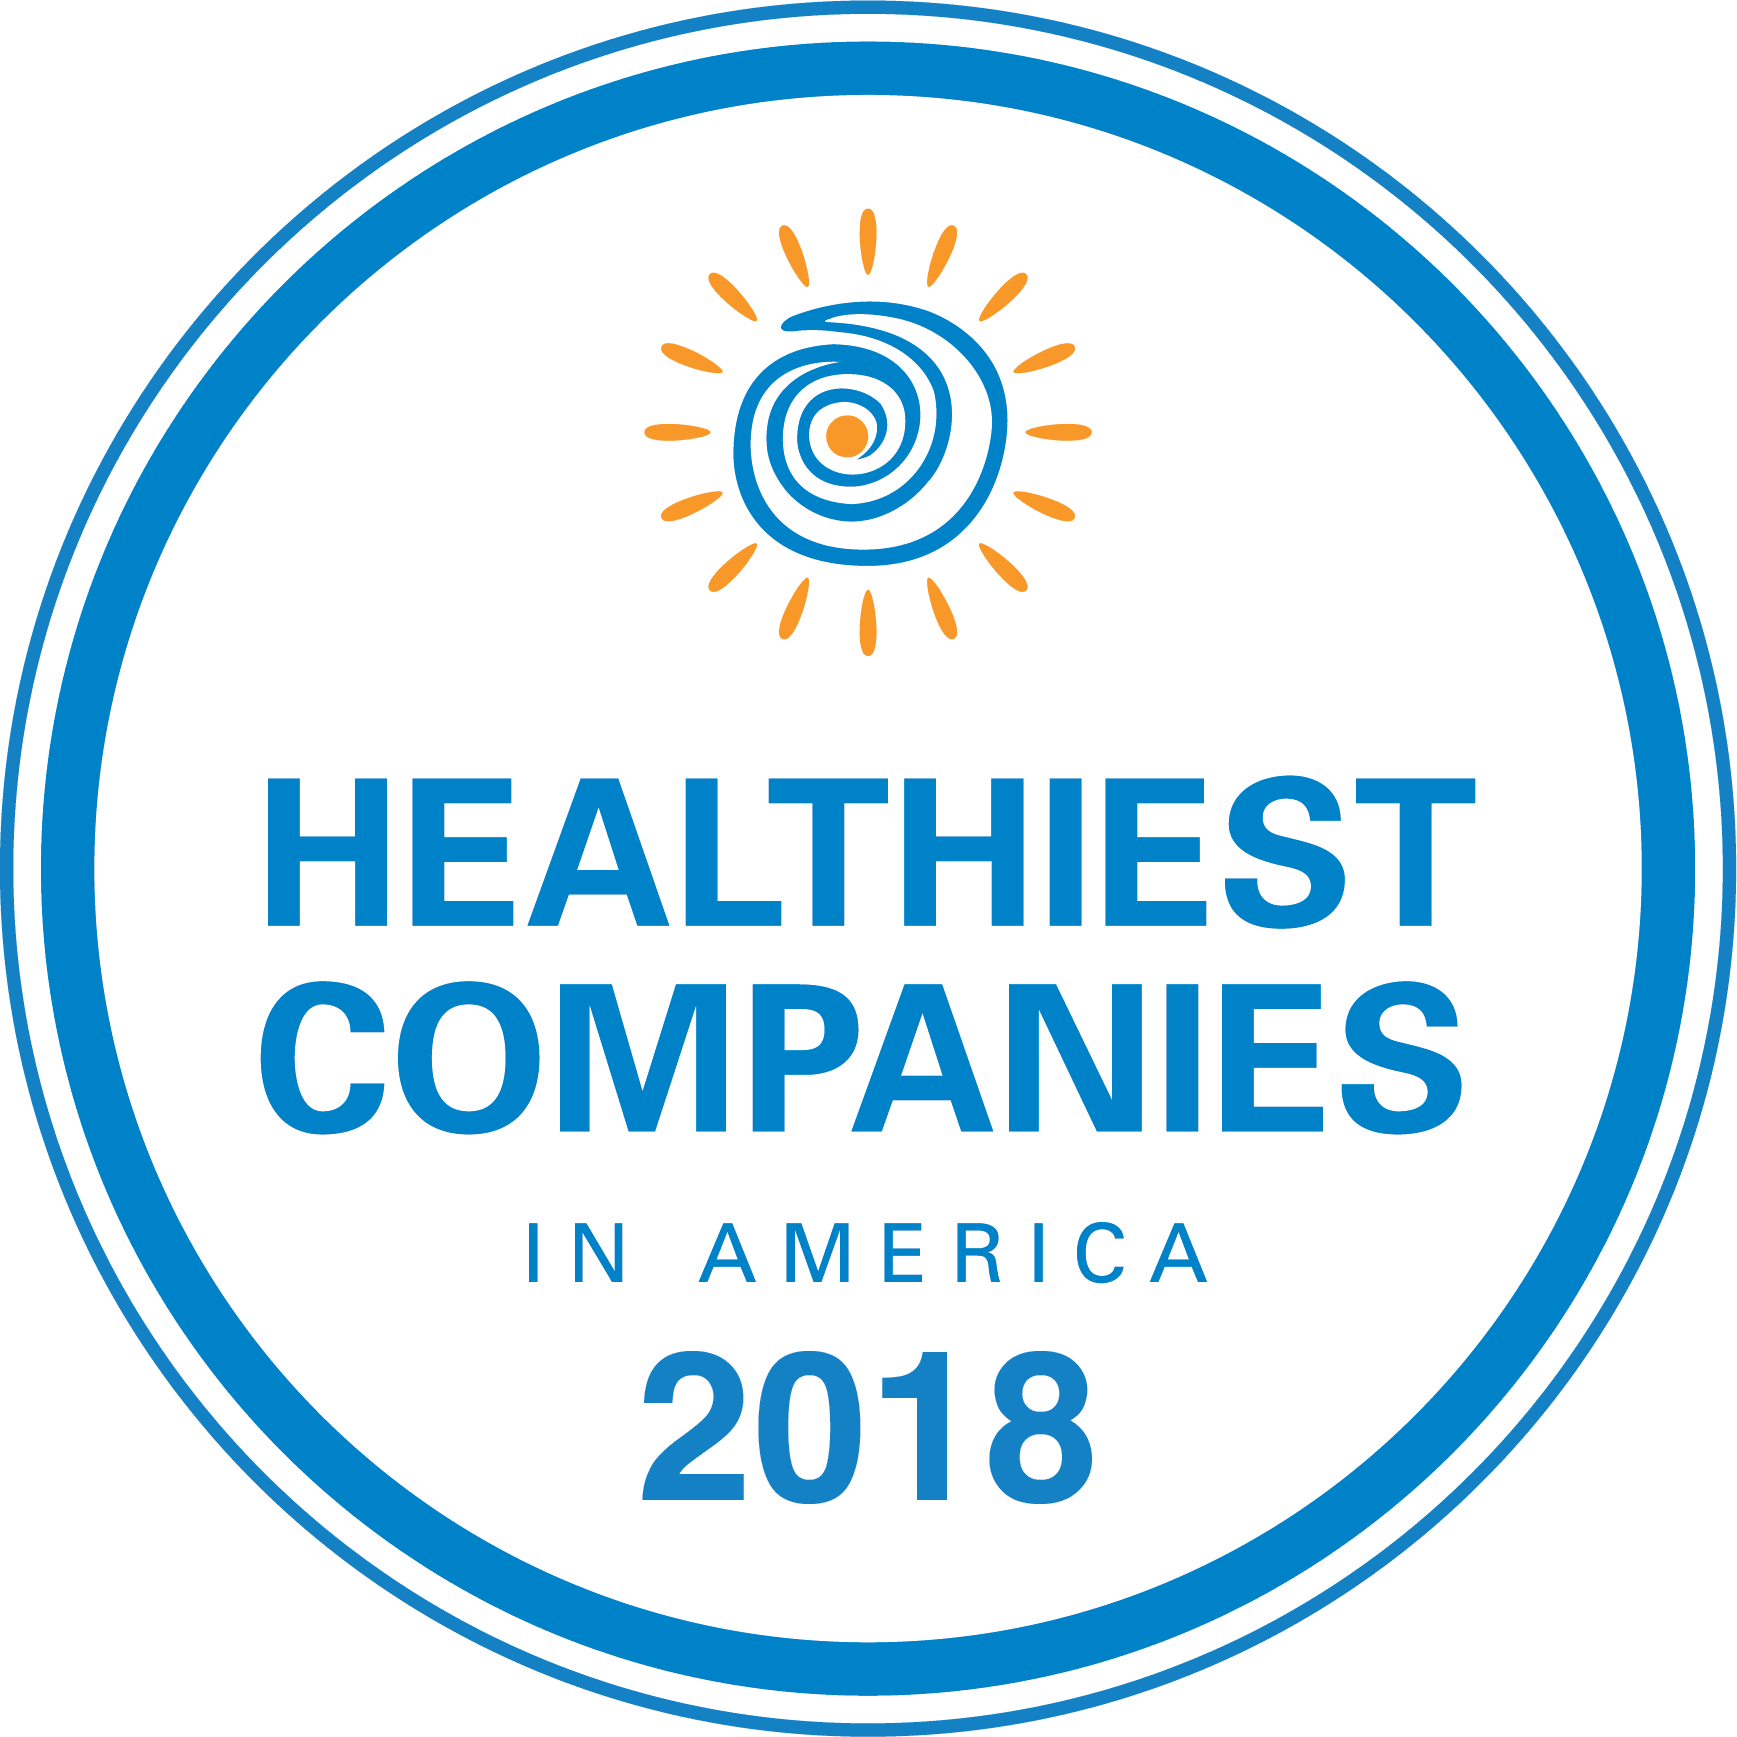 Healthiest Companies in America 2018